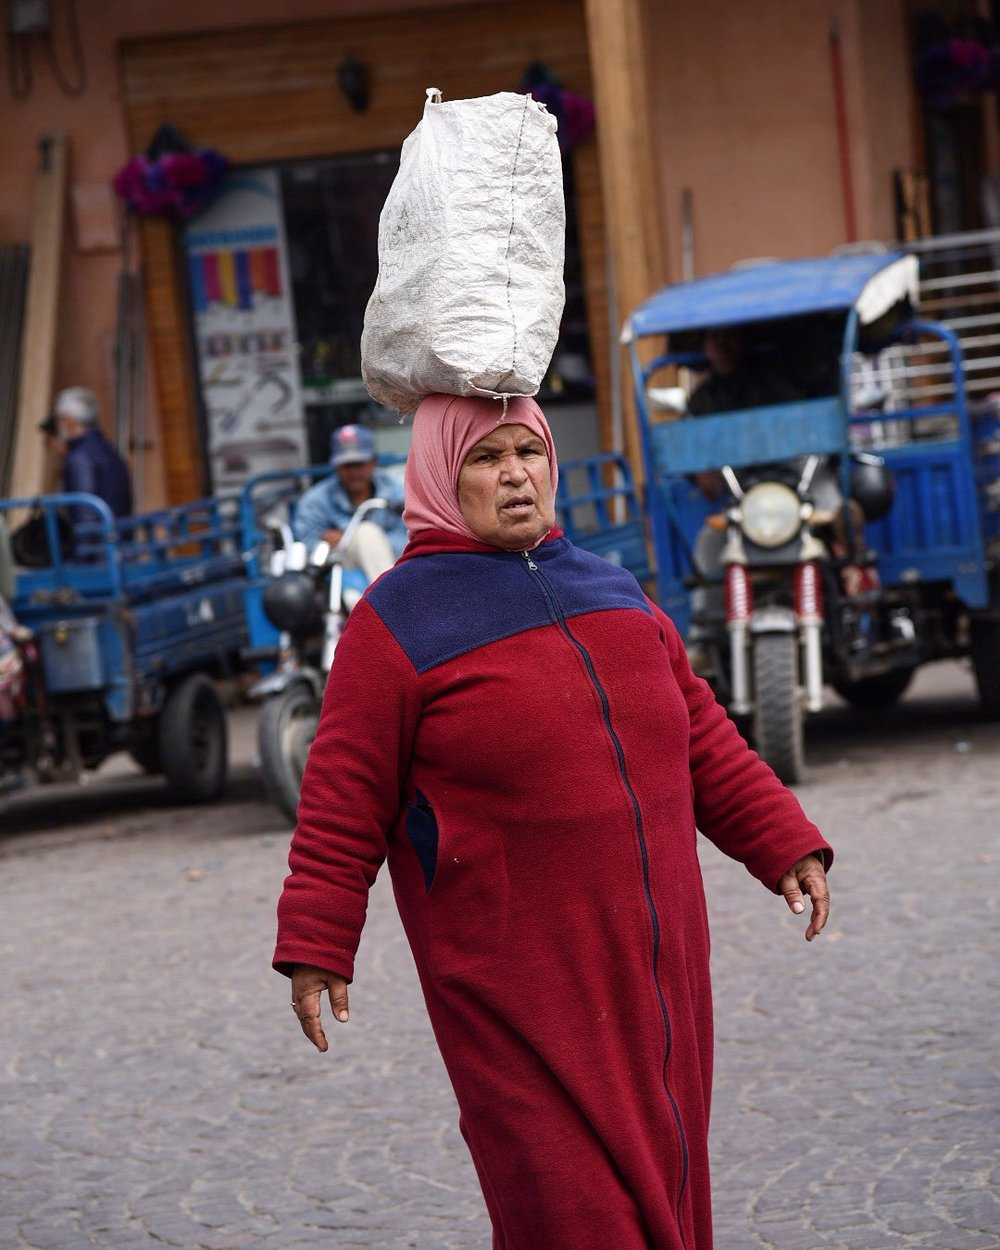 A woman carries a bundle on her head while walking in Marrakesh